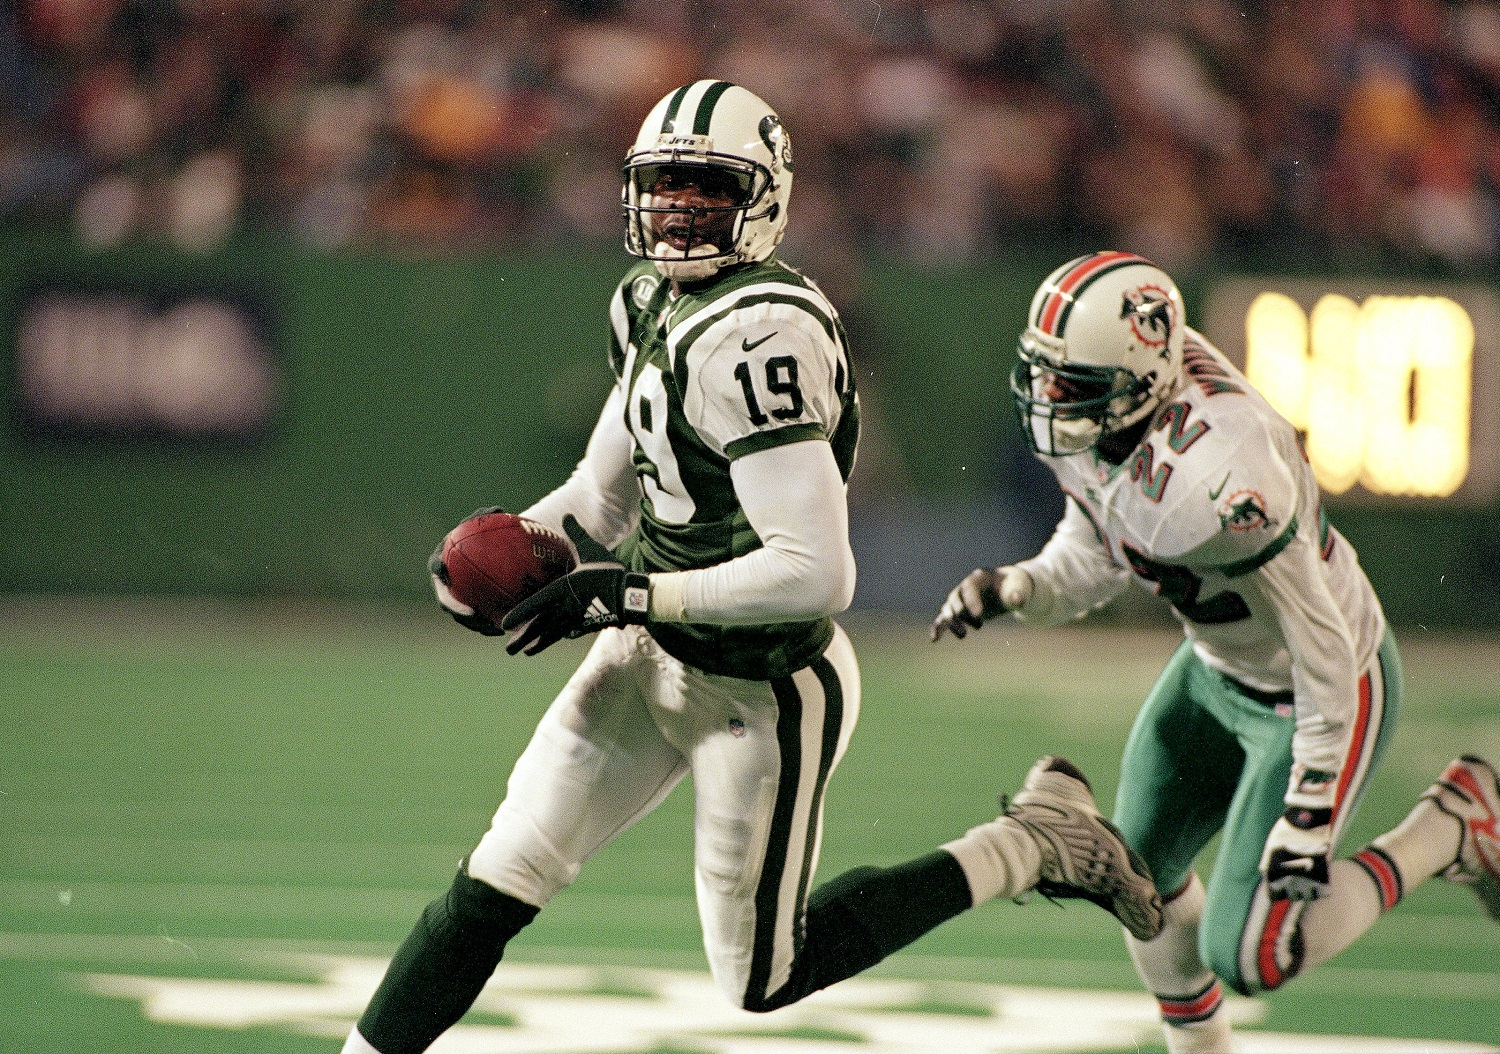 ESPN analyst Keyshawn Johnson began his NFL career with the New York Jets after being drafted No. 1 overall.